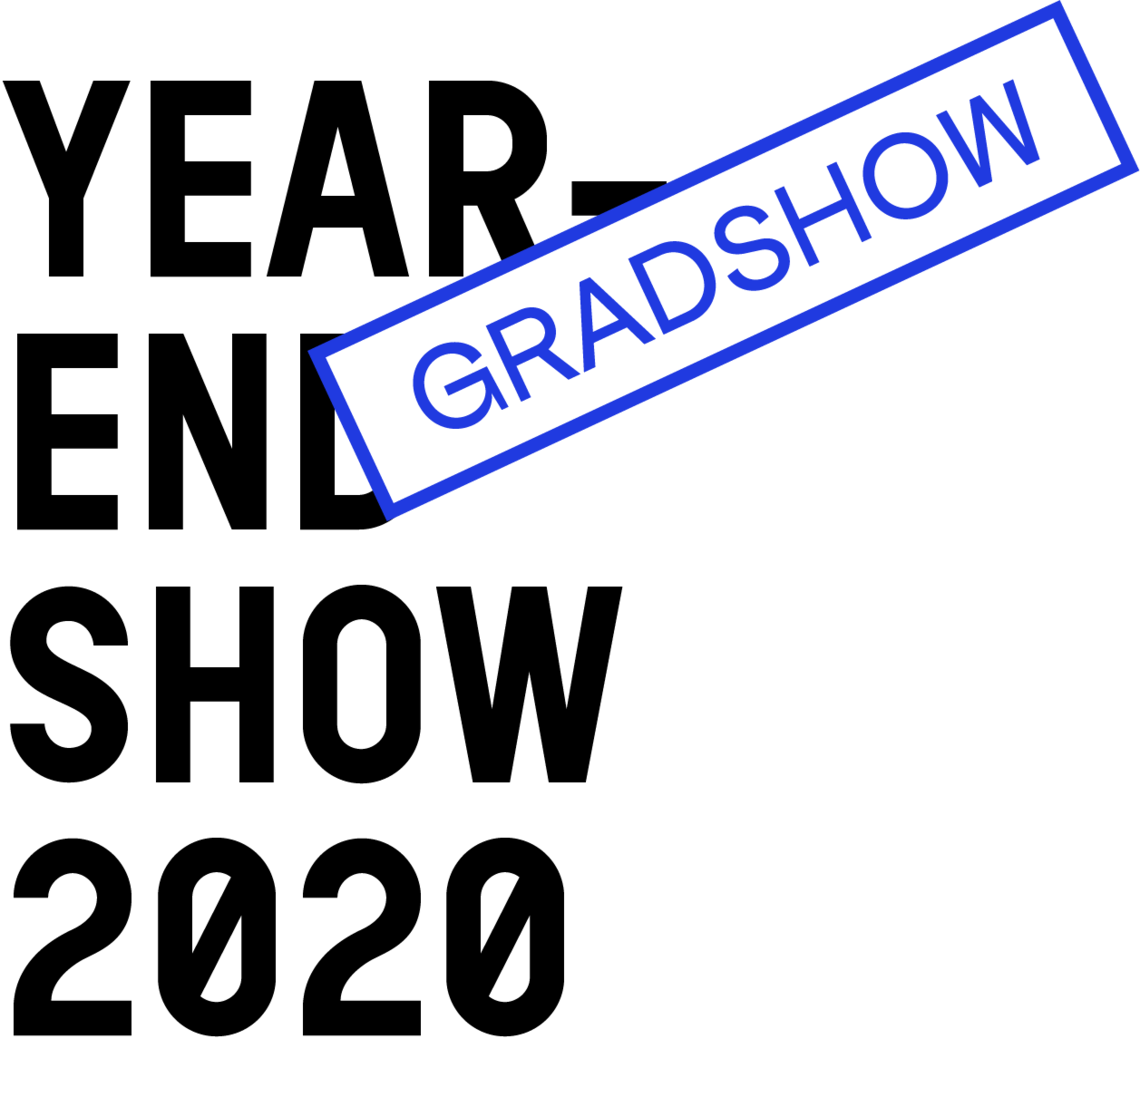 YES 2020 gradshow